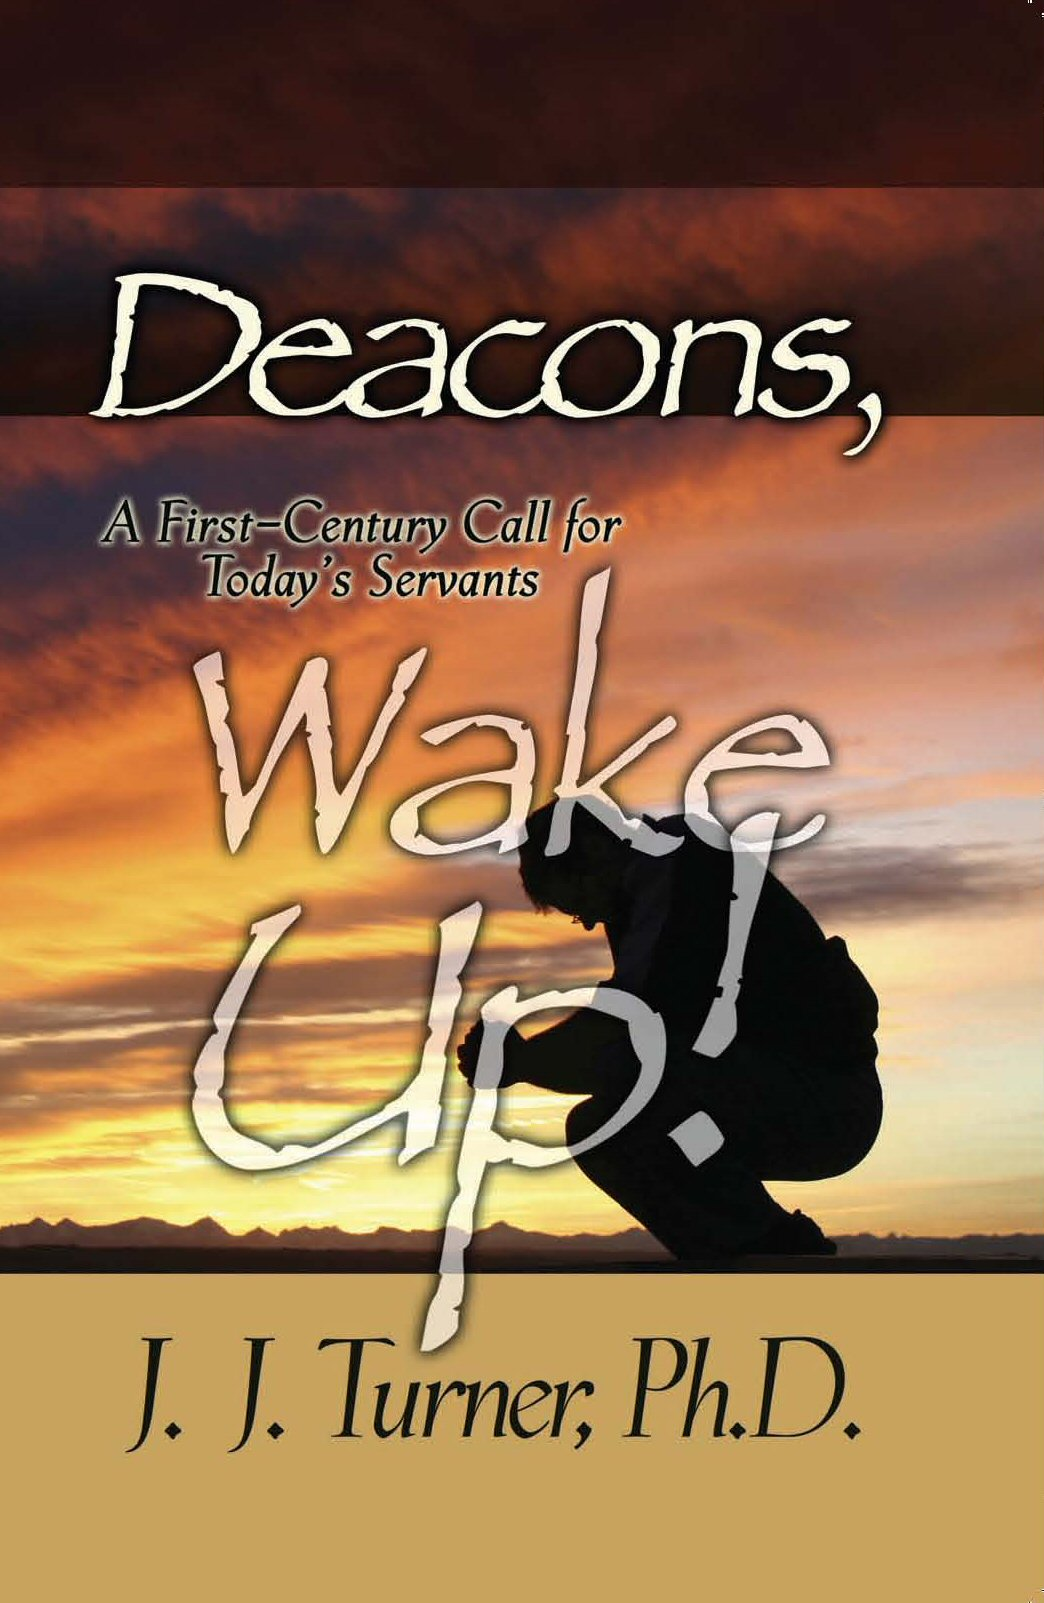 Deacons Wake Up  Publishing Designs